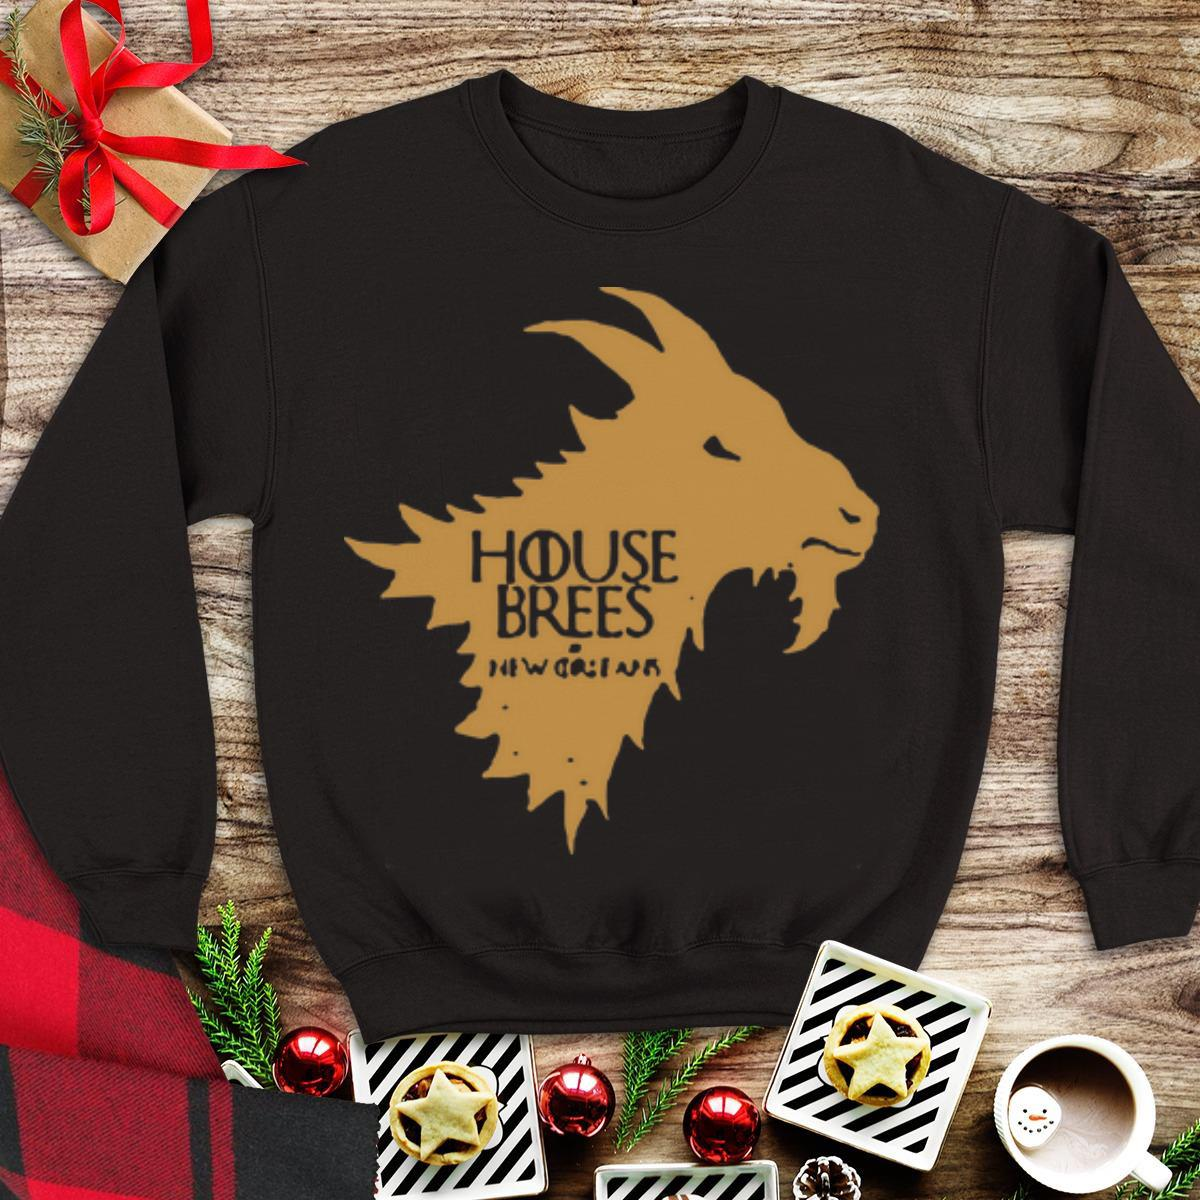 Awesome Game Of Thrones House Stark House Brees shirt